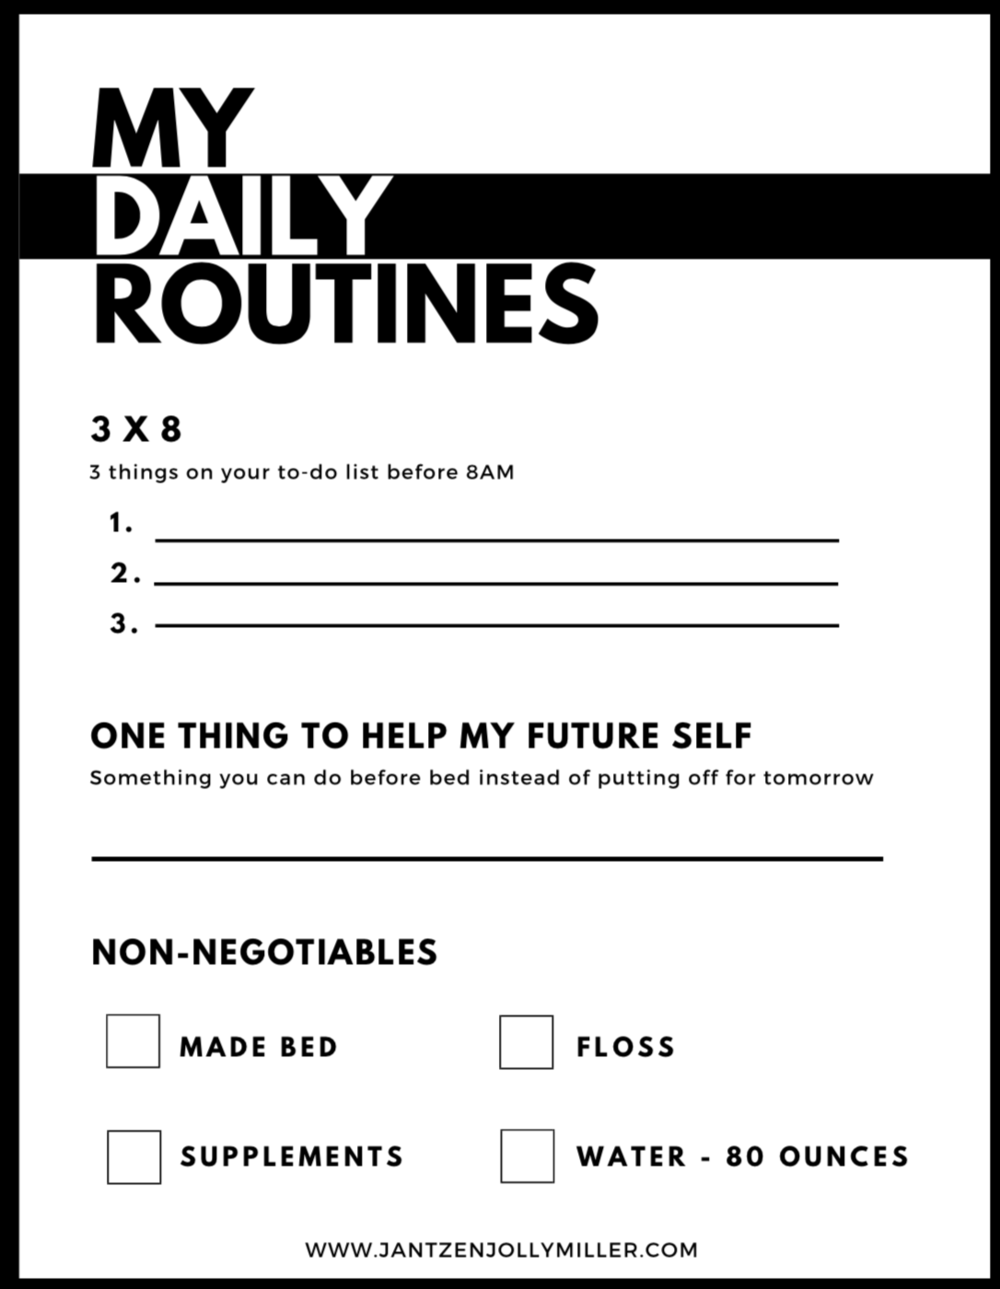 Download Your FREE Daily Routines Tracker - GET YOURS NOW